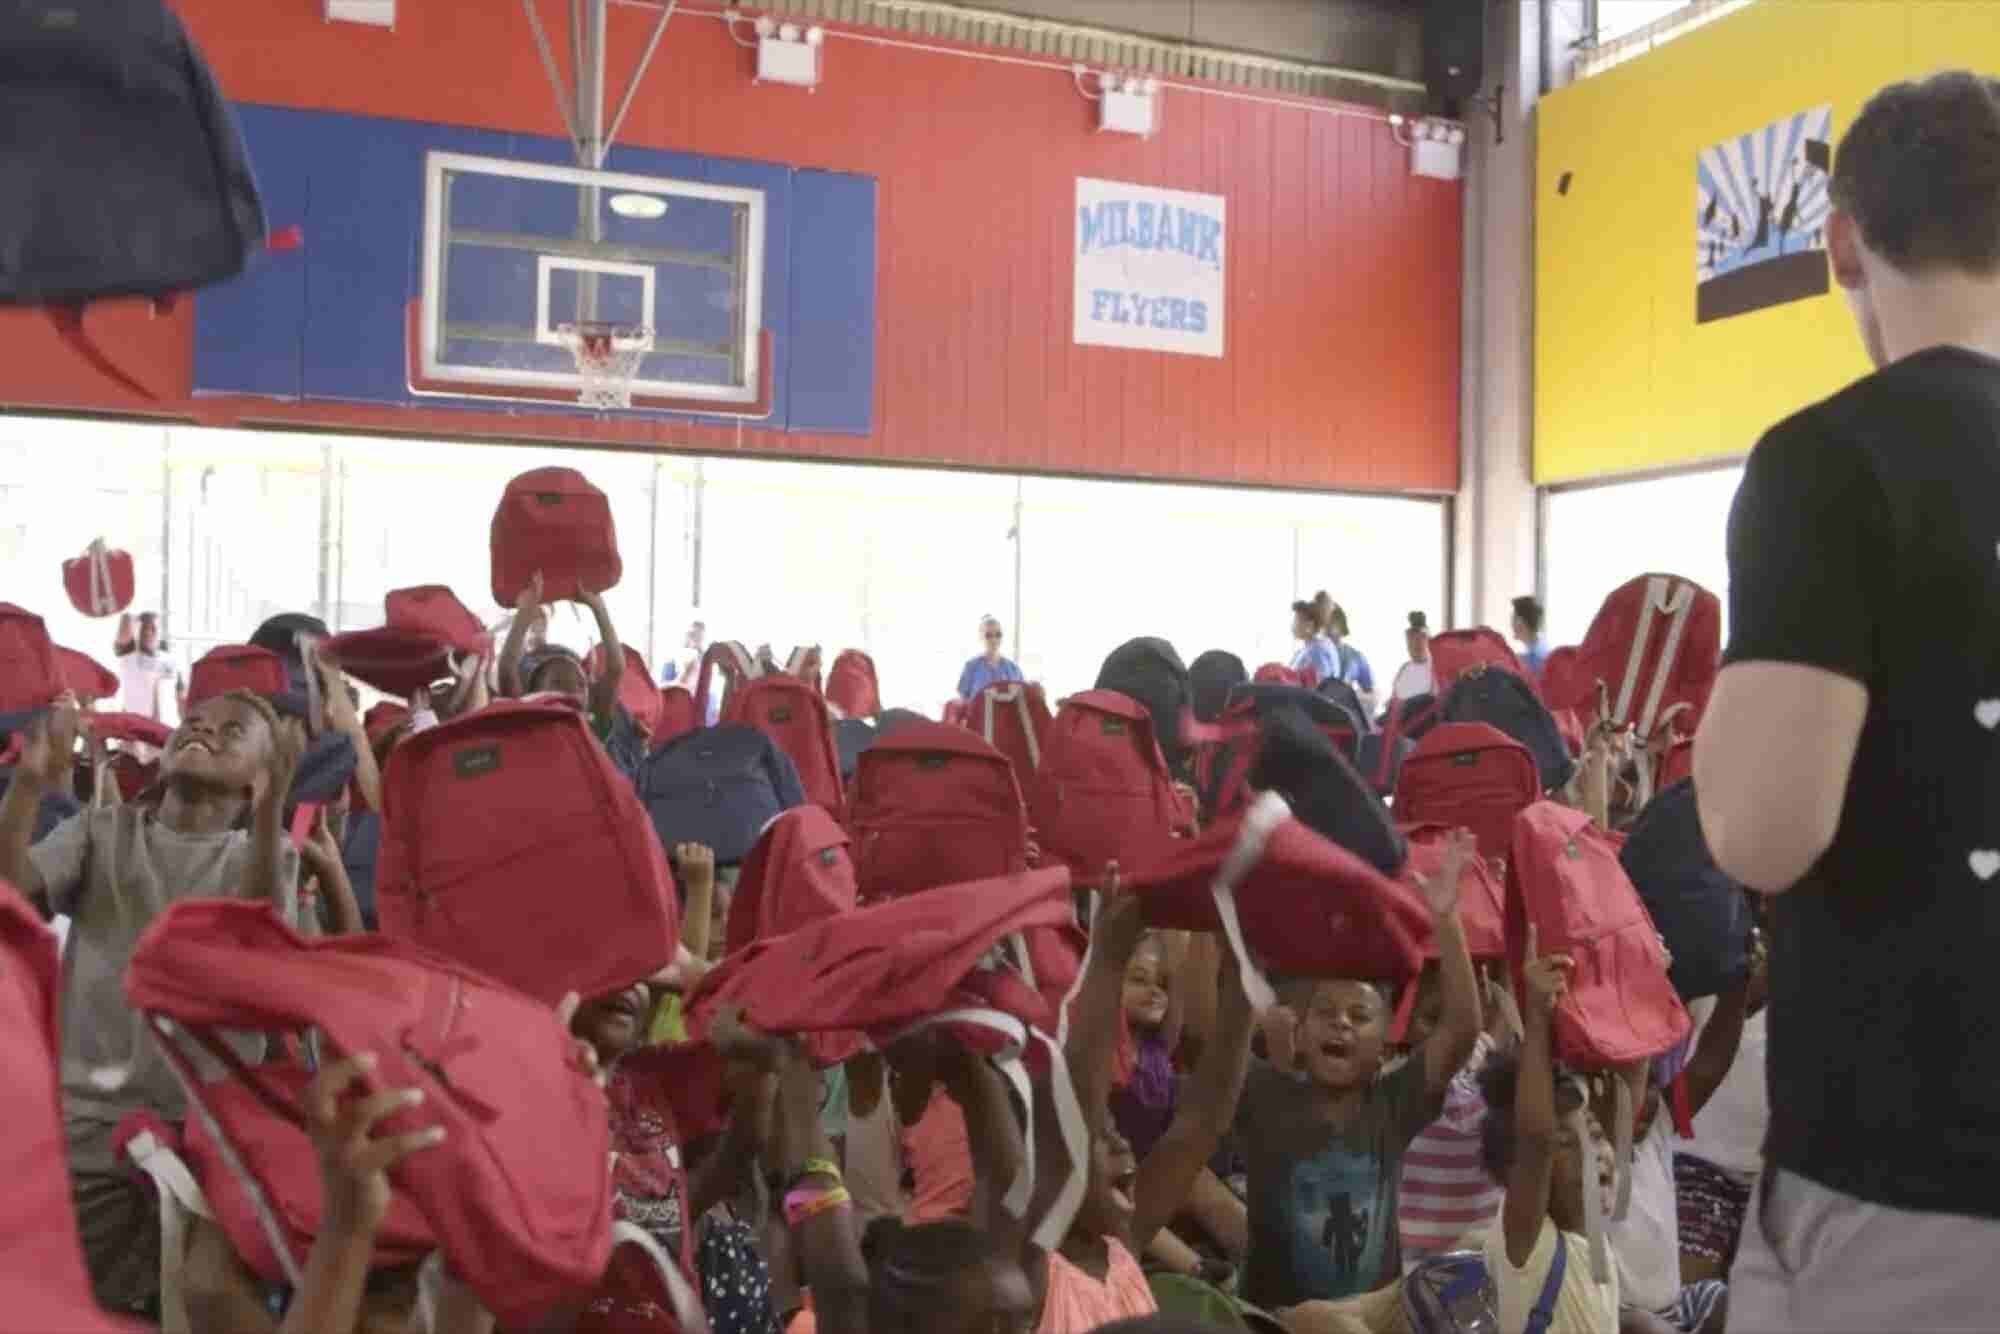 How This Backpack Startup Is Giving Back